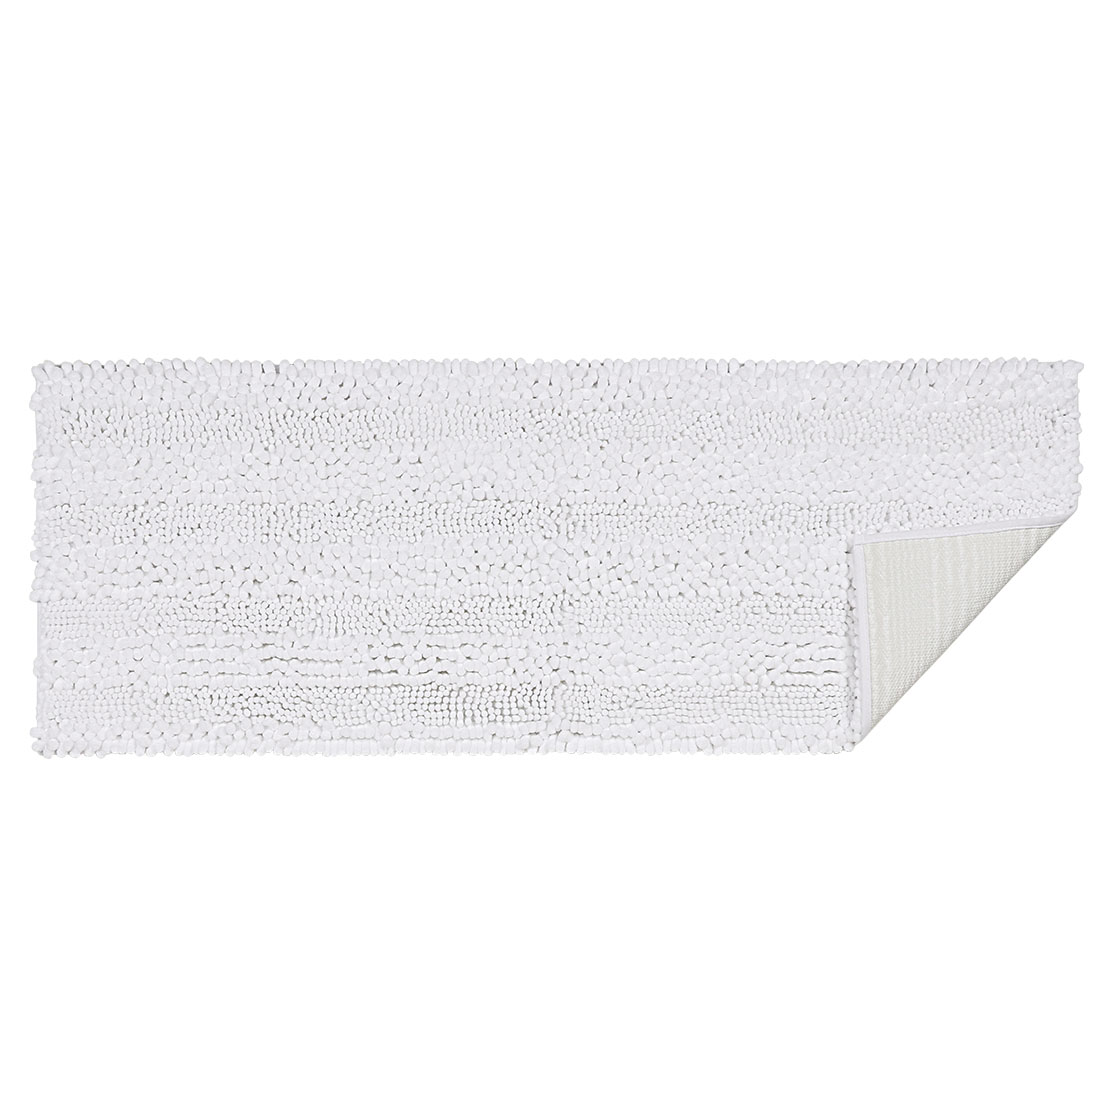 17 x 47 Inch Luxury Soft Plush Shaggy Bath Mat Chenille Rug Carpet White